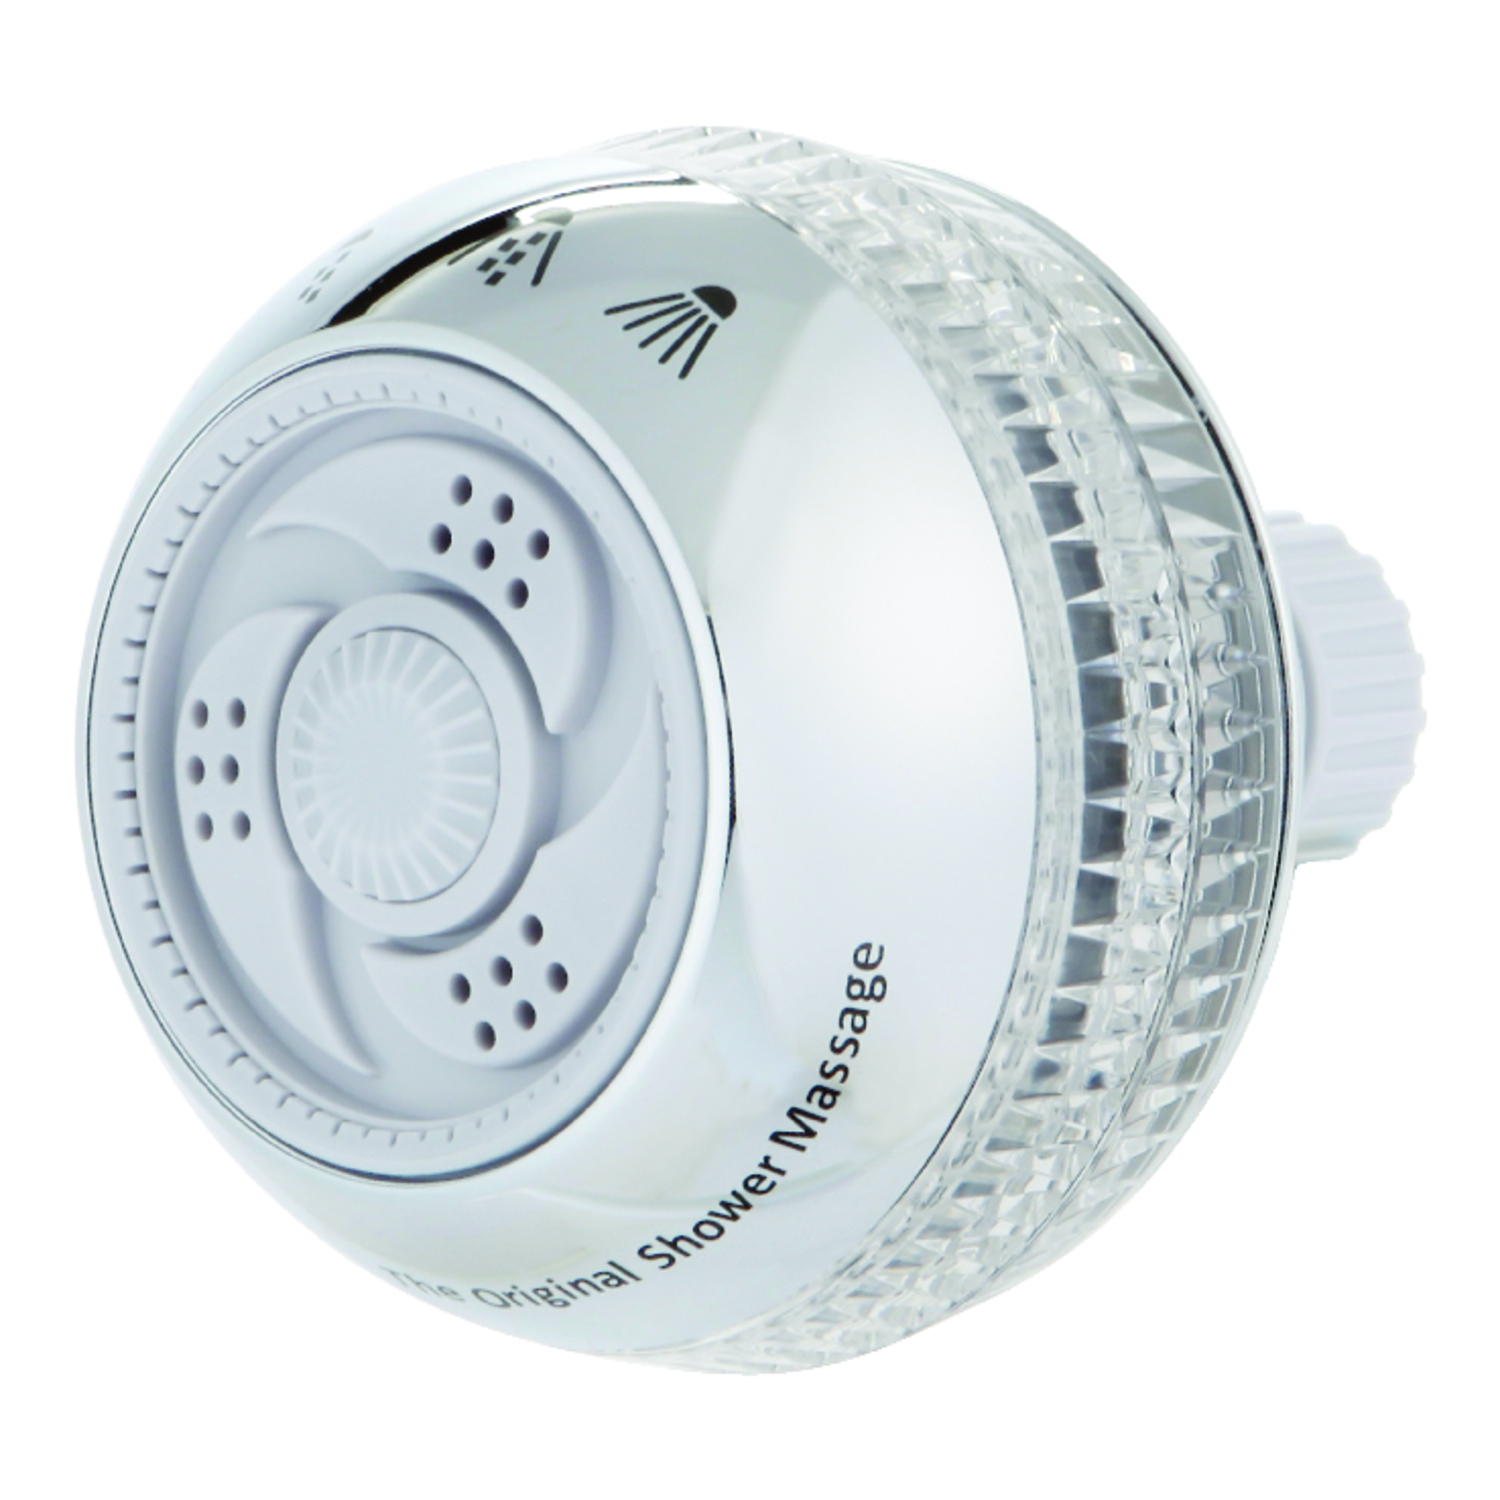 Waterpik  Showerhead  4 settings 2.5 gpm